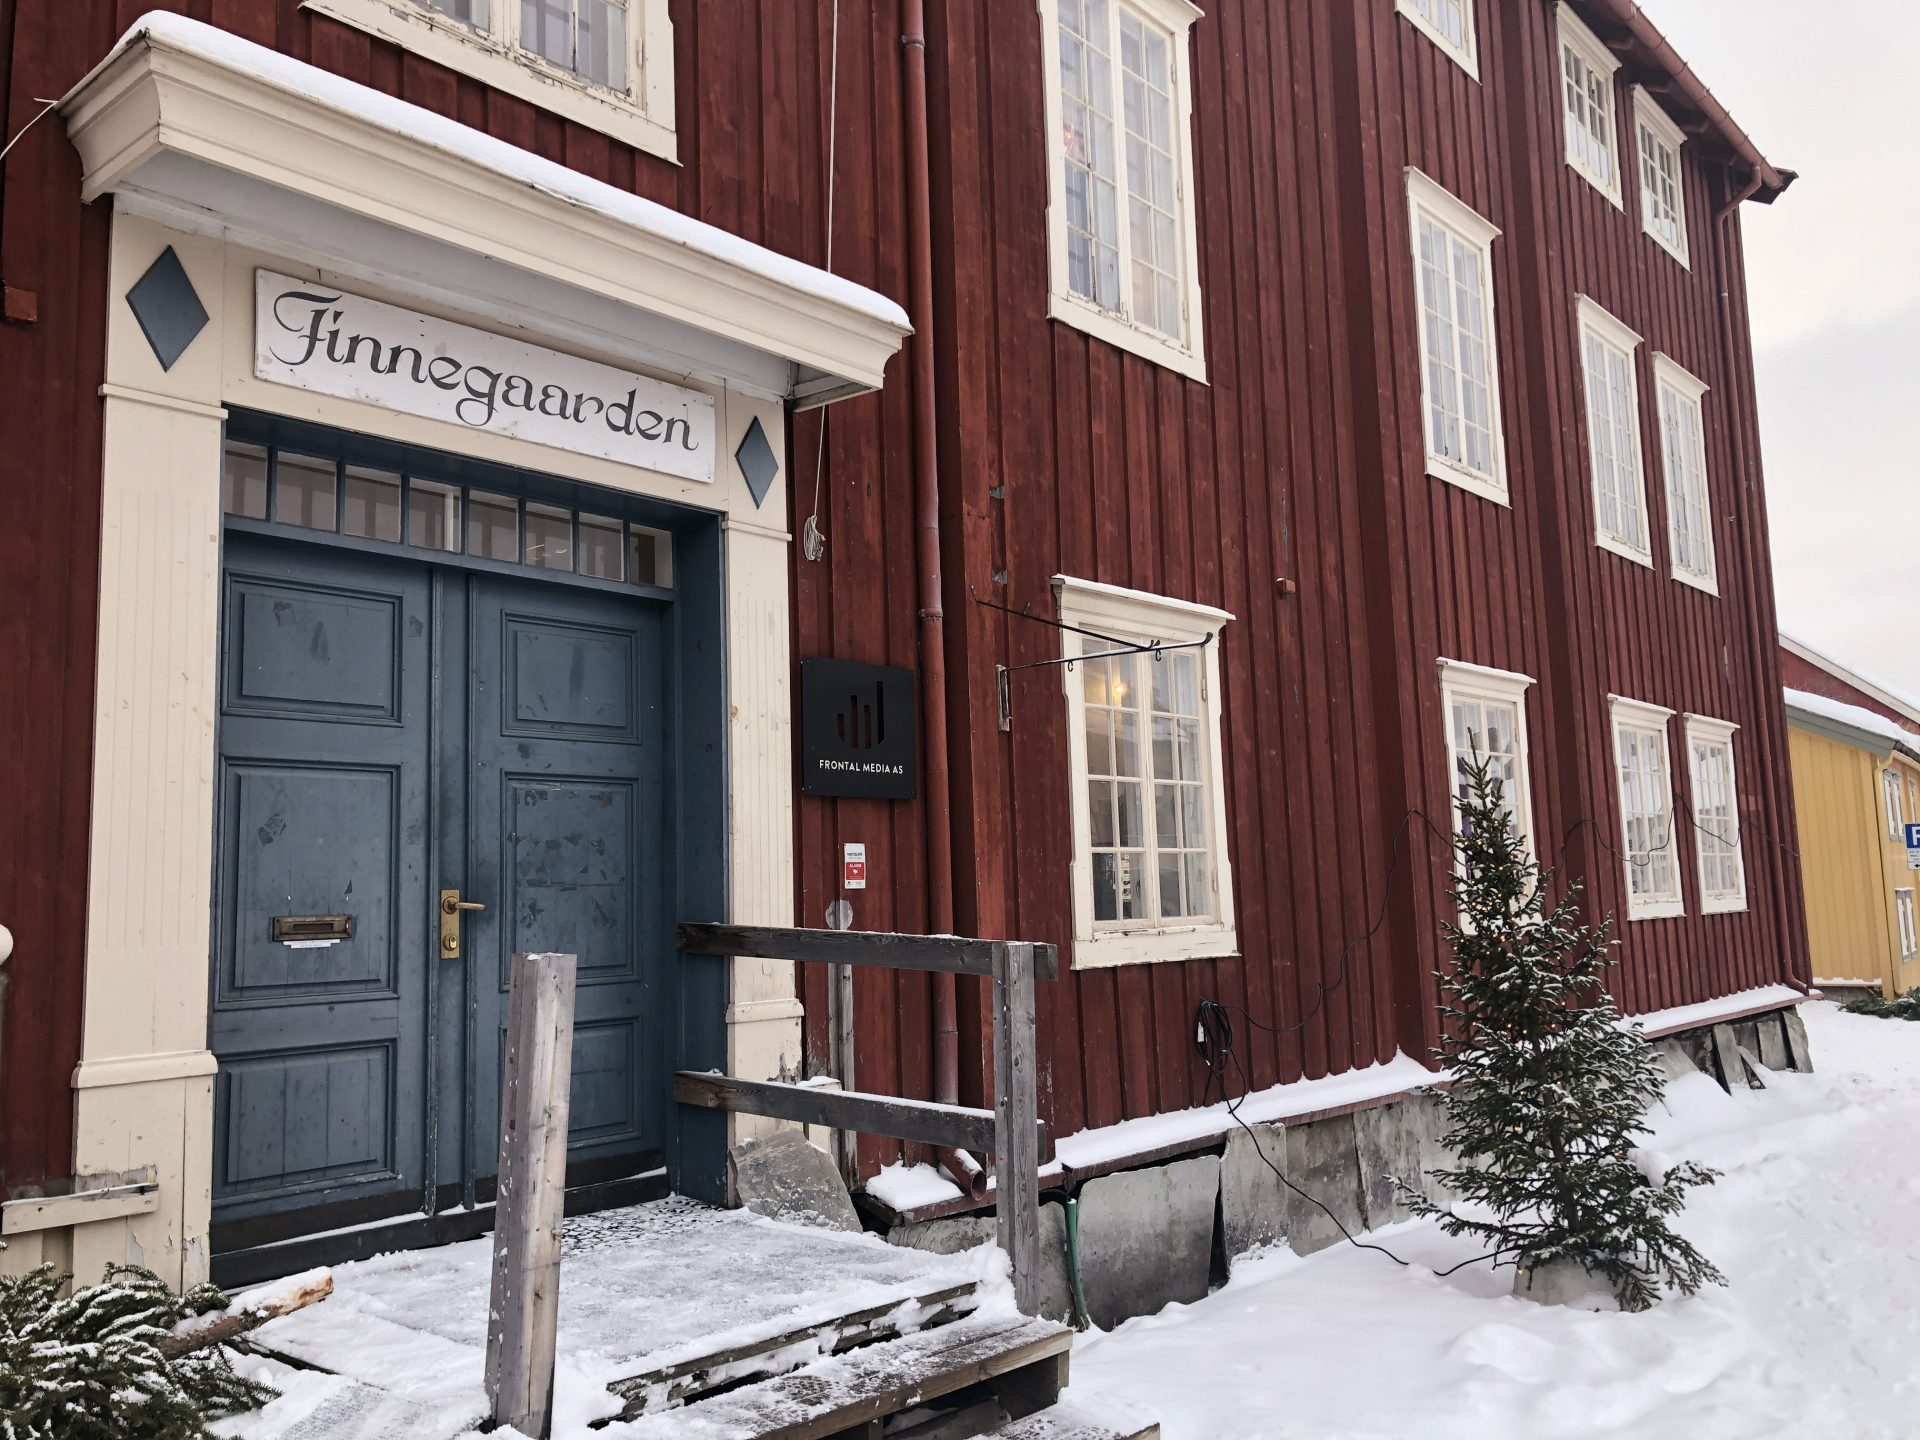 Finnegaarden in Røros became a listed building in 2018. Photo: